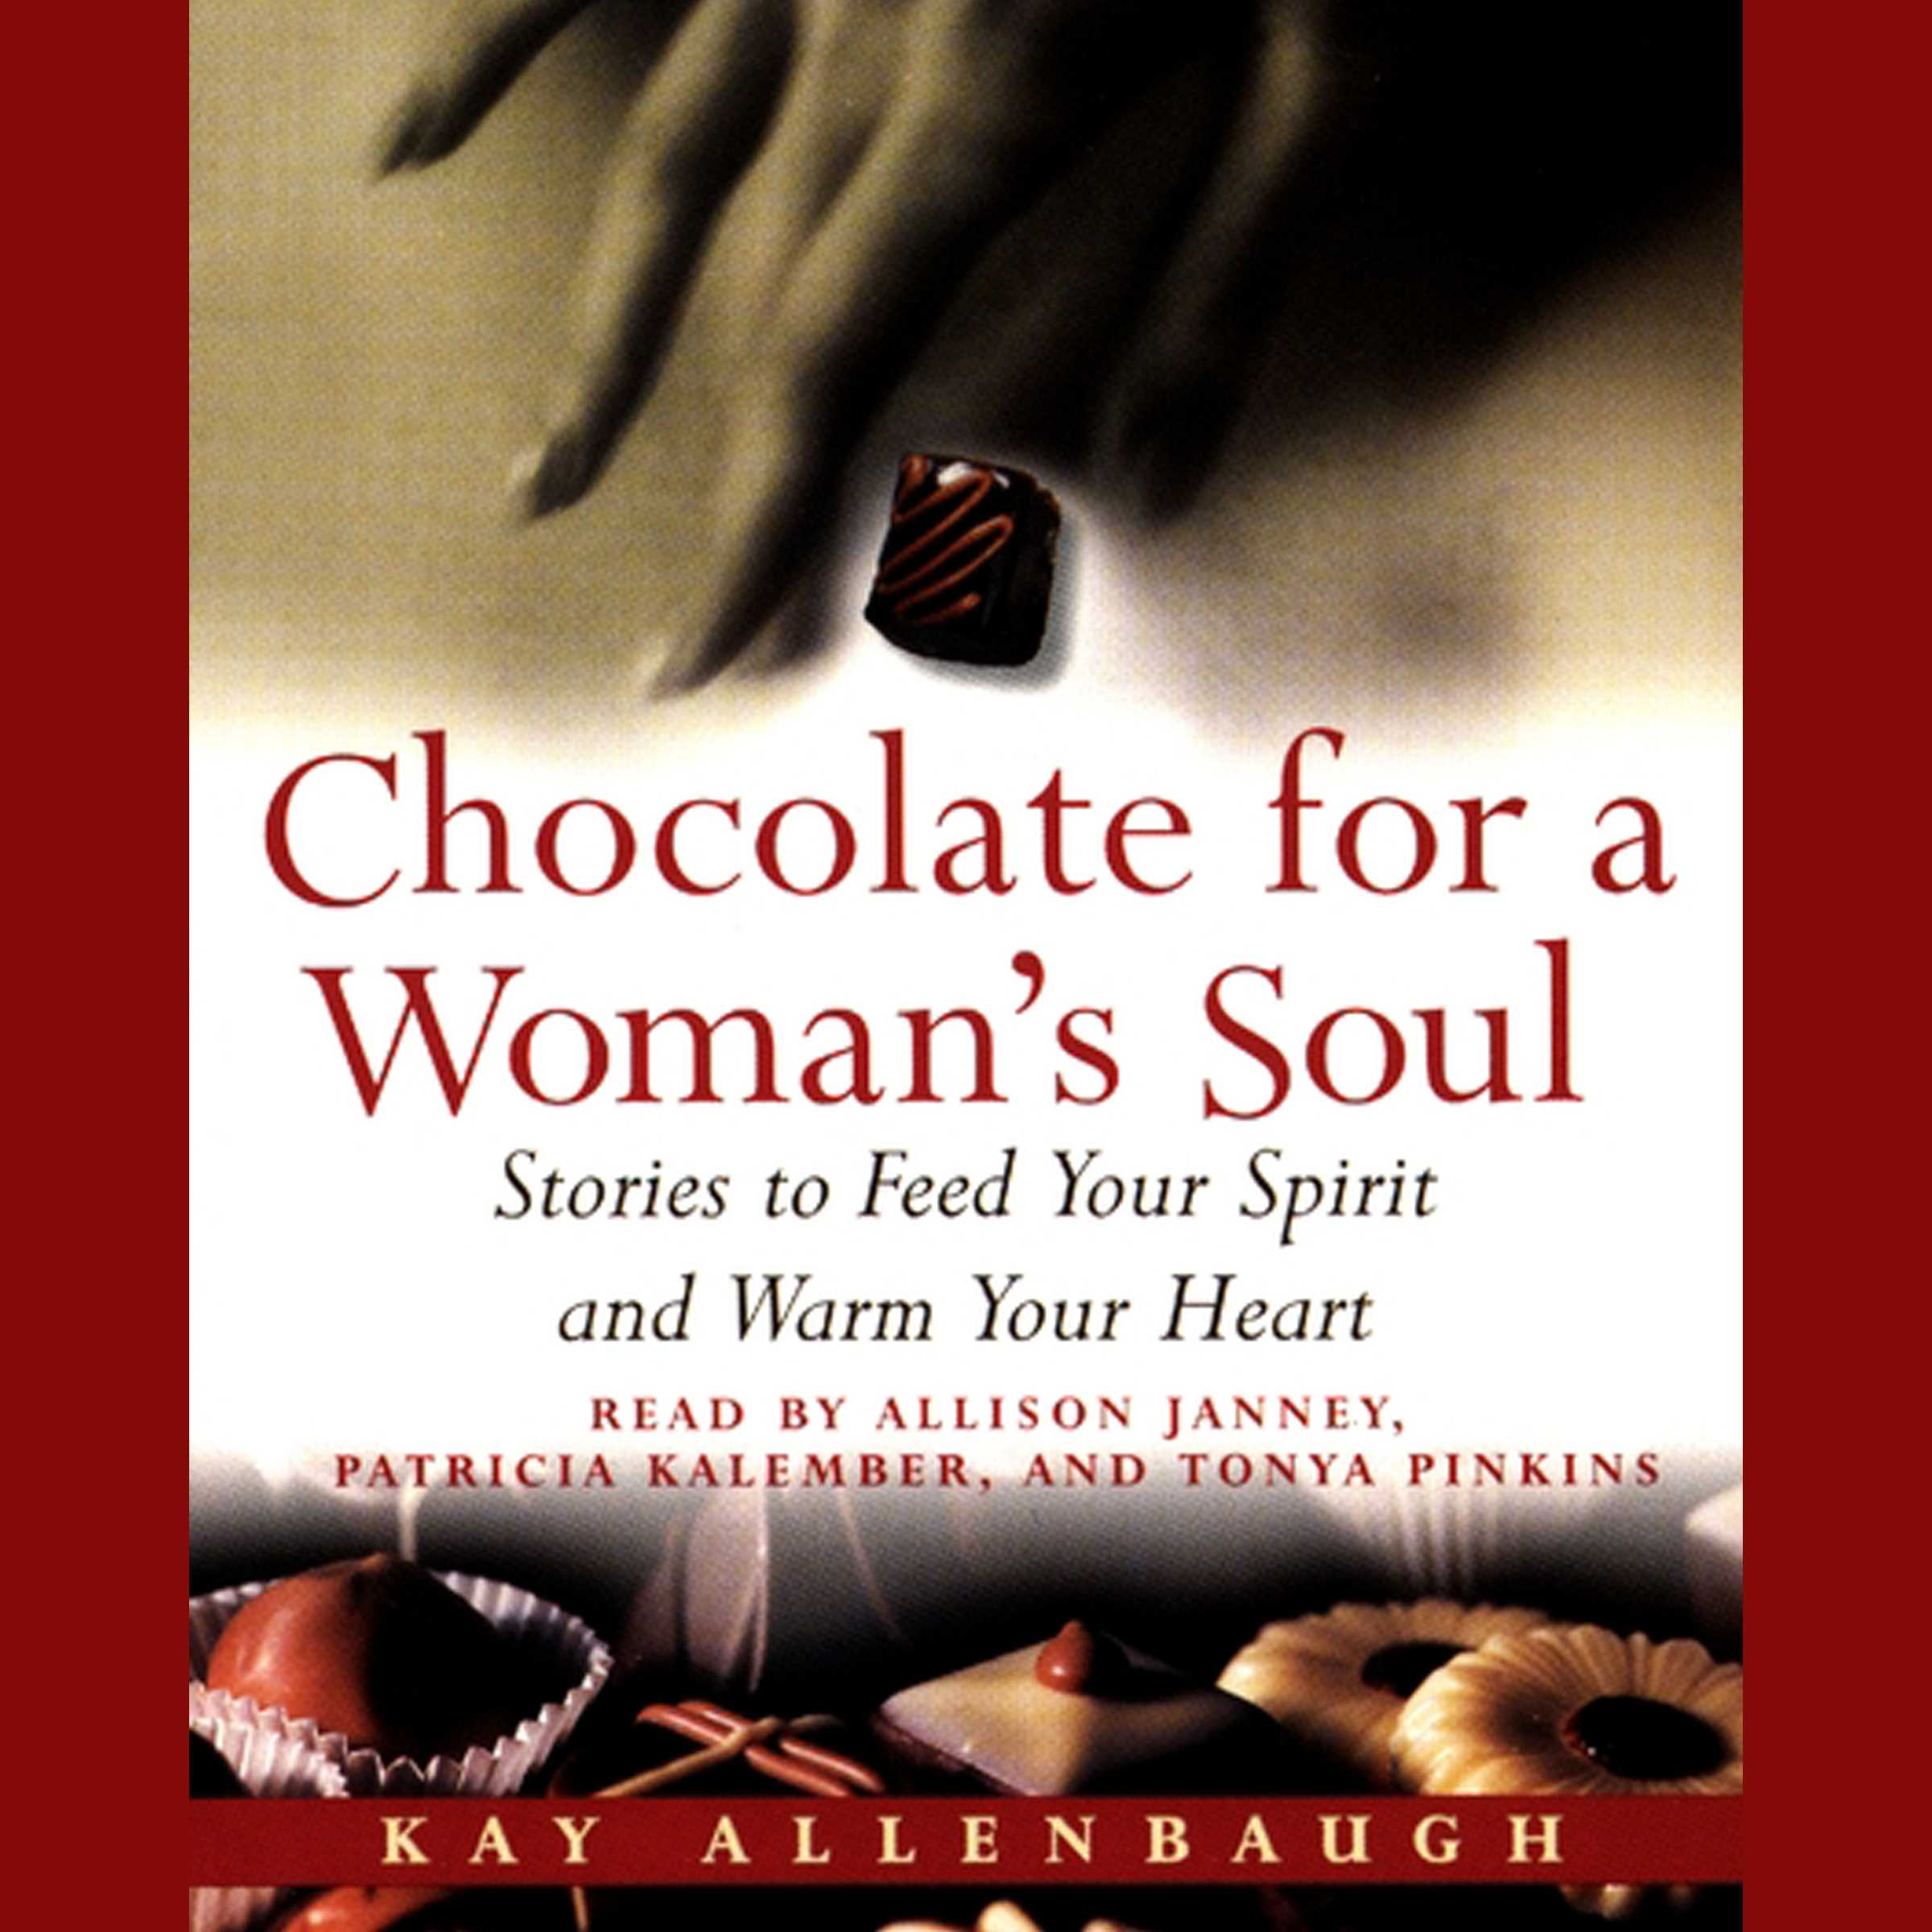 Chocolate for a womans soul 9780743542807 hr